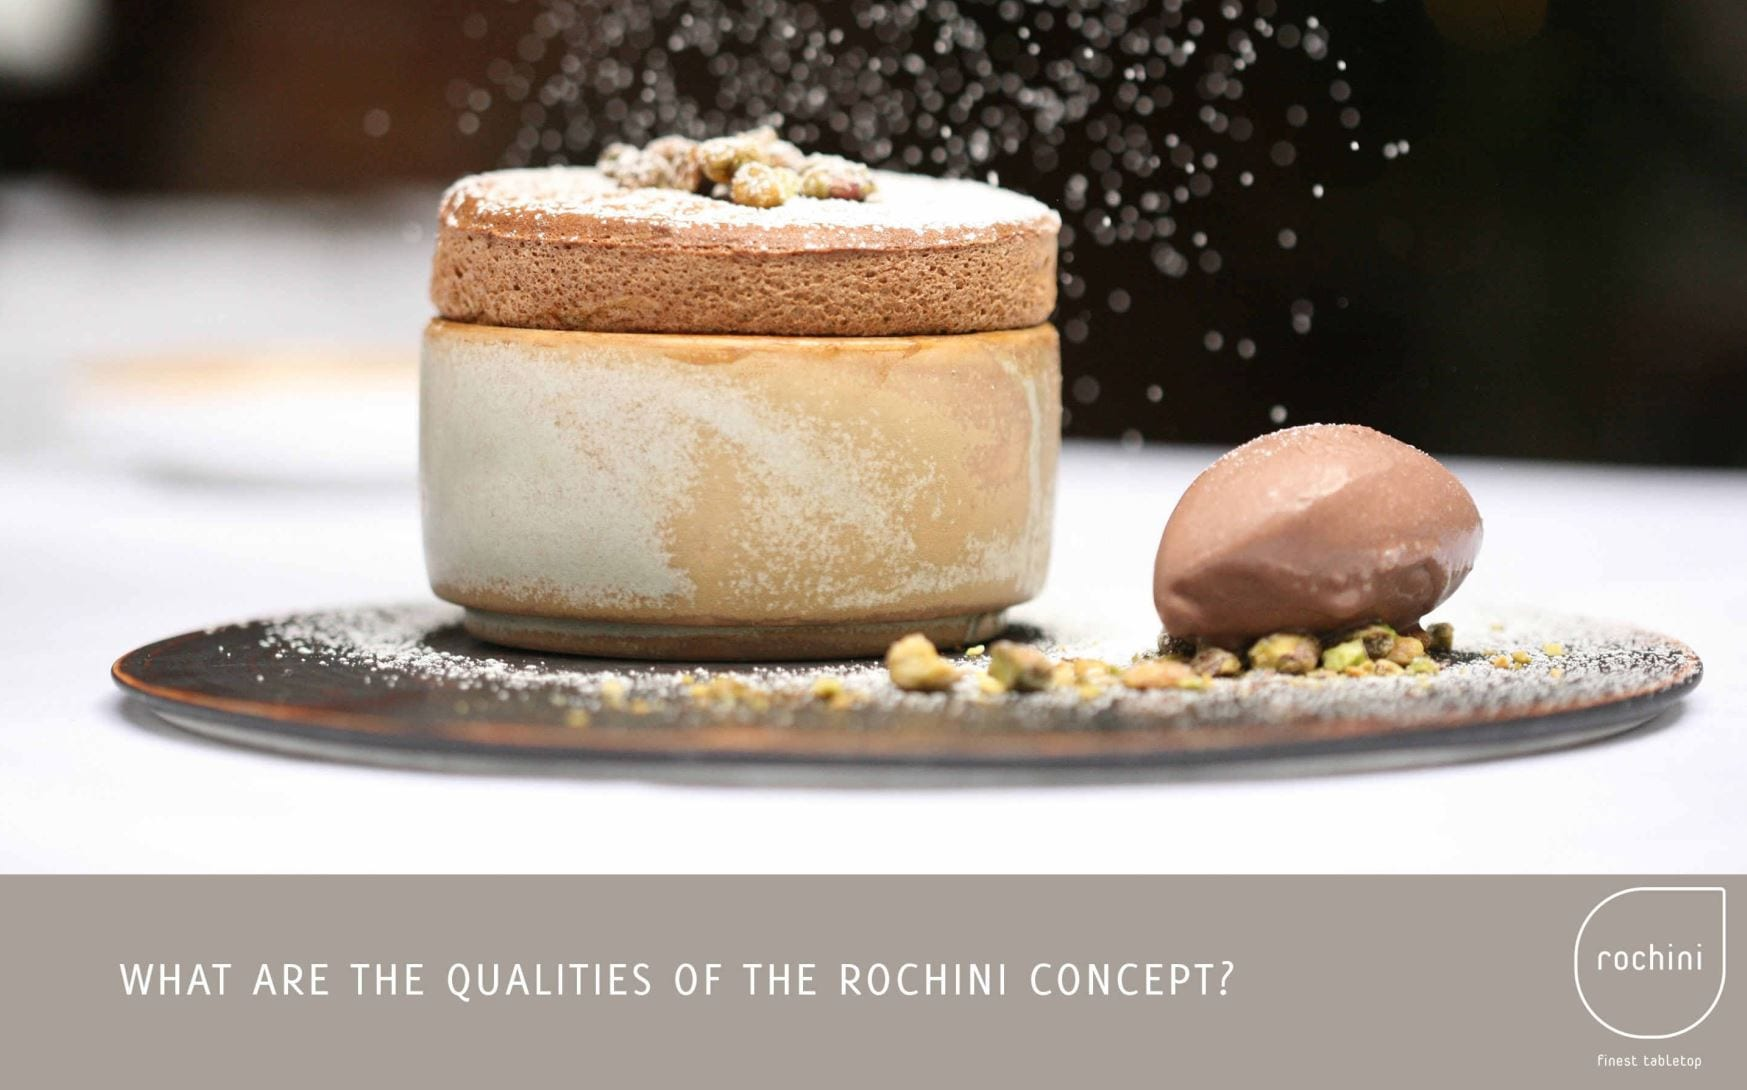 7 What´s the rochini concept?